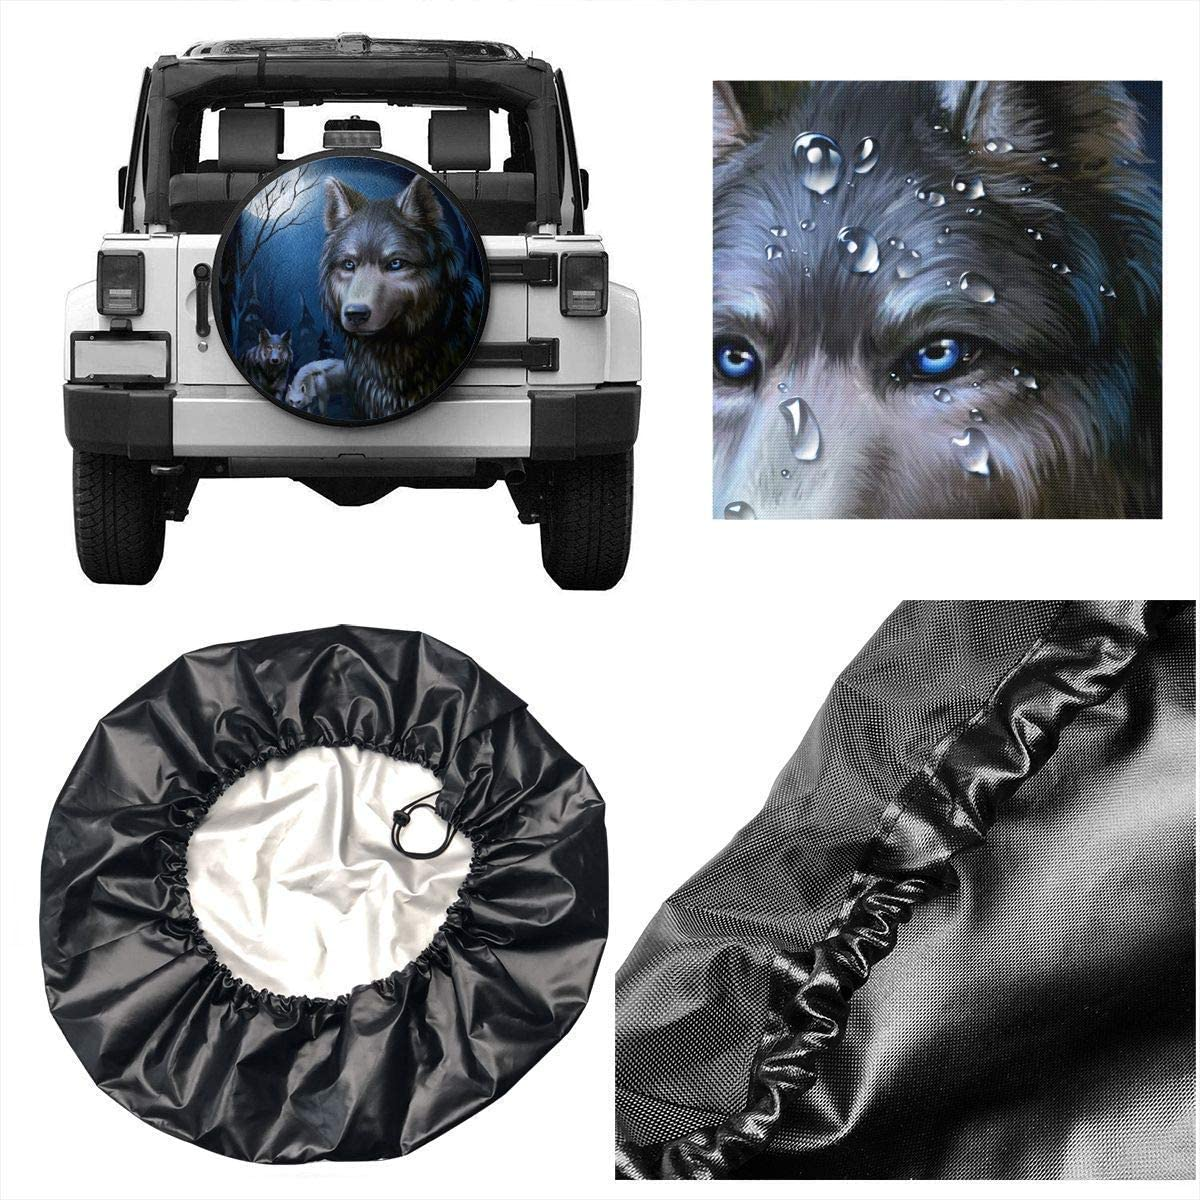 Belleeer Housse de Roue de Secours,Tire Cover Polyester Universal Spare Wheel Tire Cover Wheel Covers for Trailer RV SUV Truck Camper Travel Trailer 14,15,16,17 inch